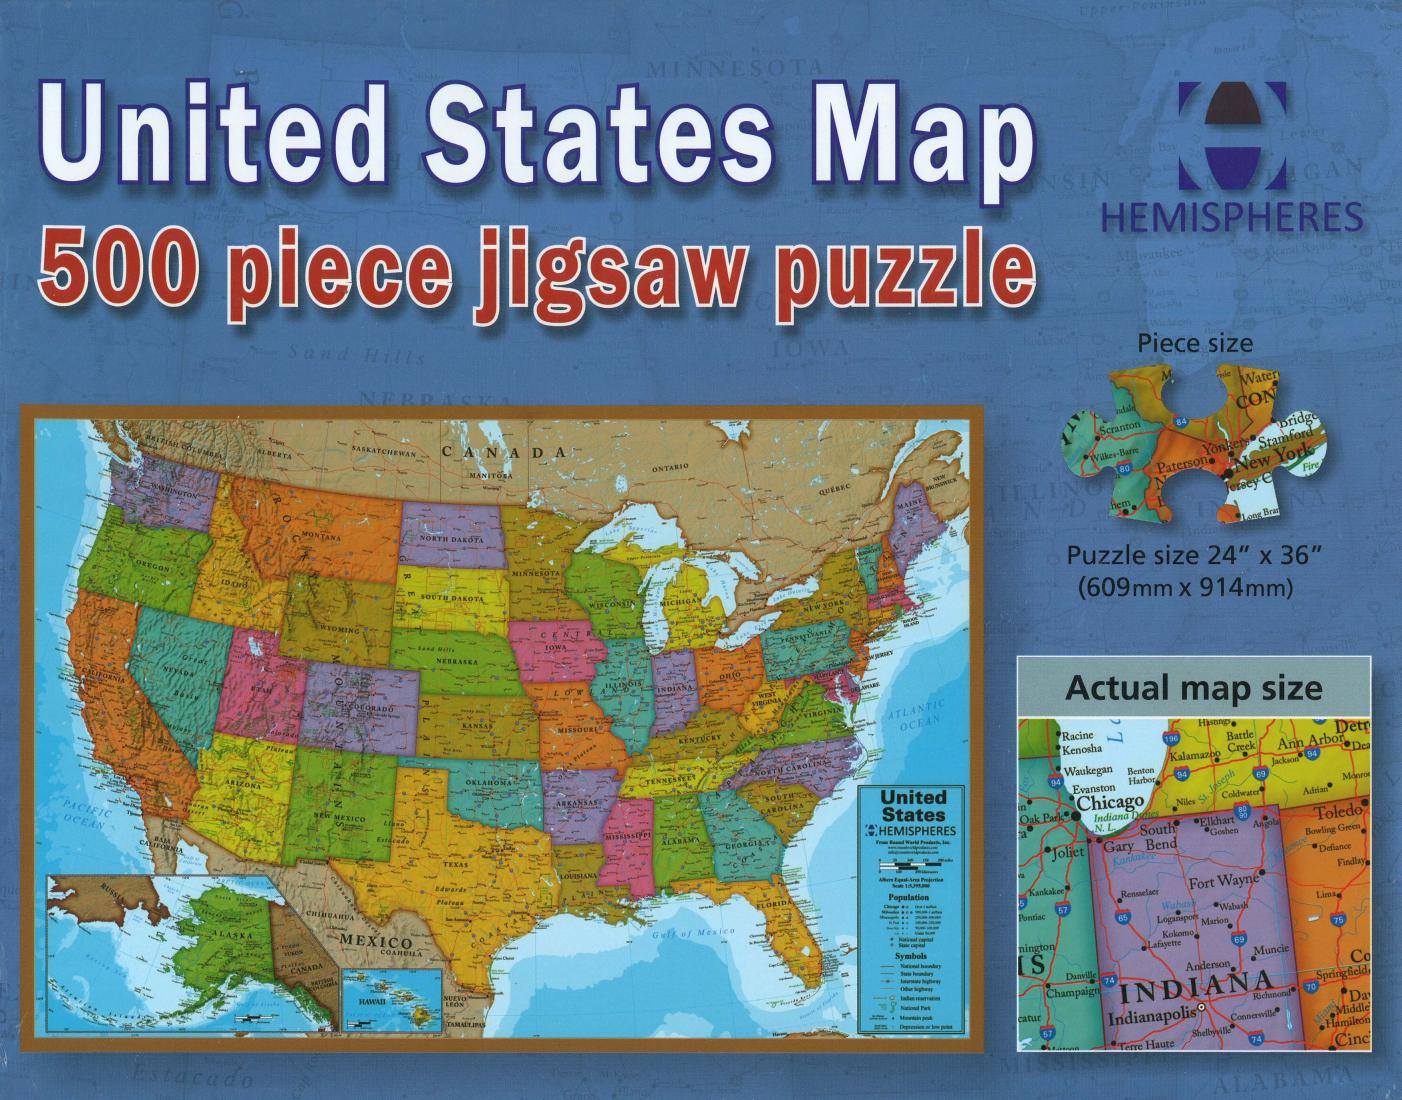 United States Map 500 Piece Puzzle By Maps International Ltd